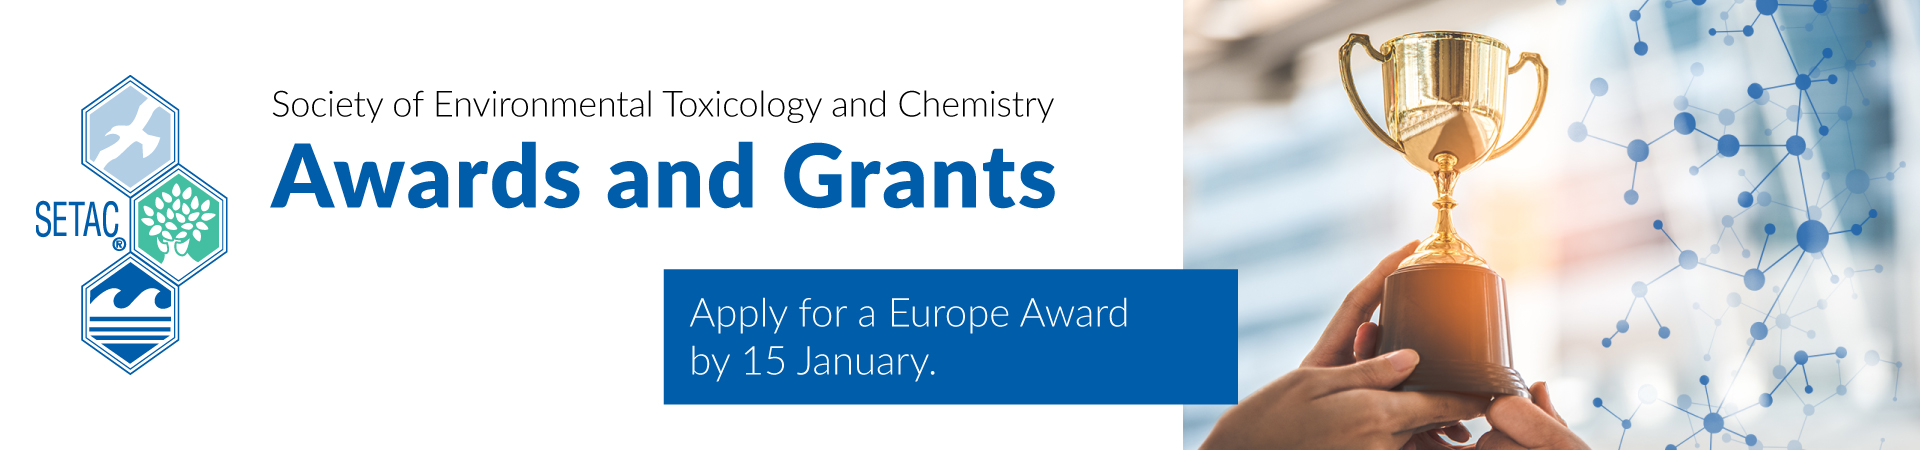 SETAC Awards and Grants